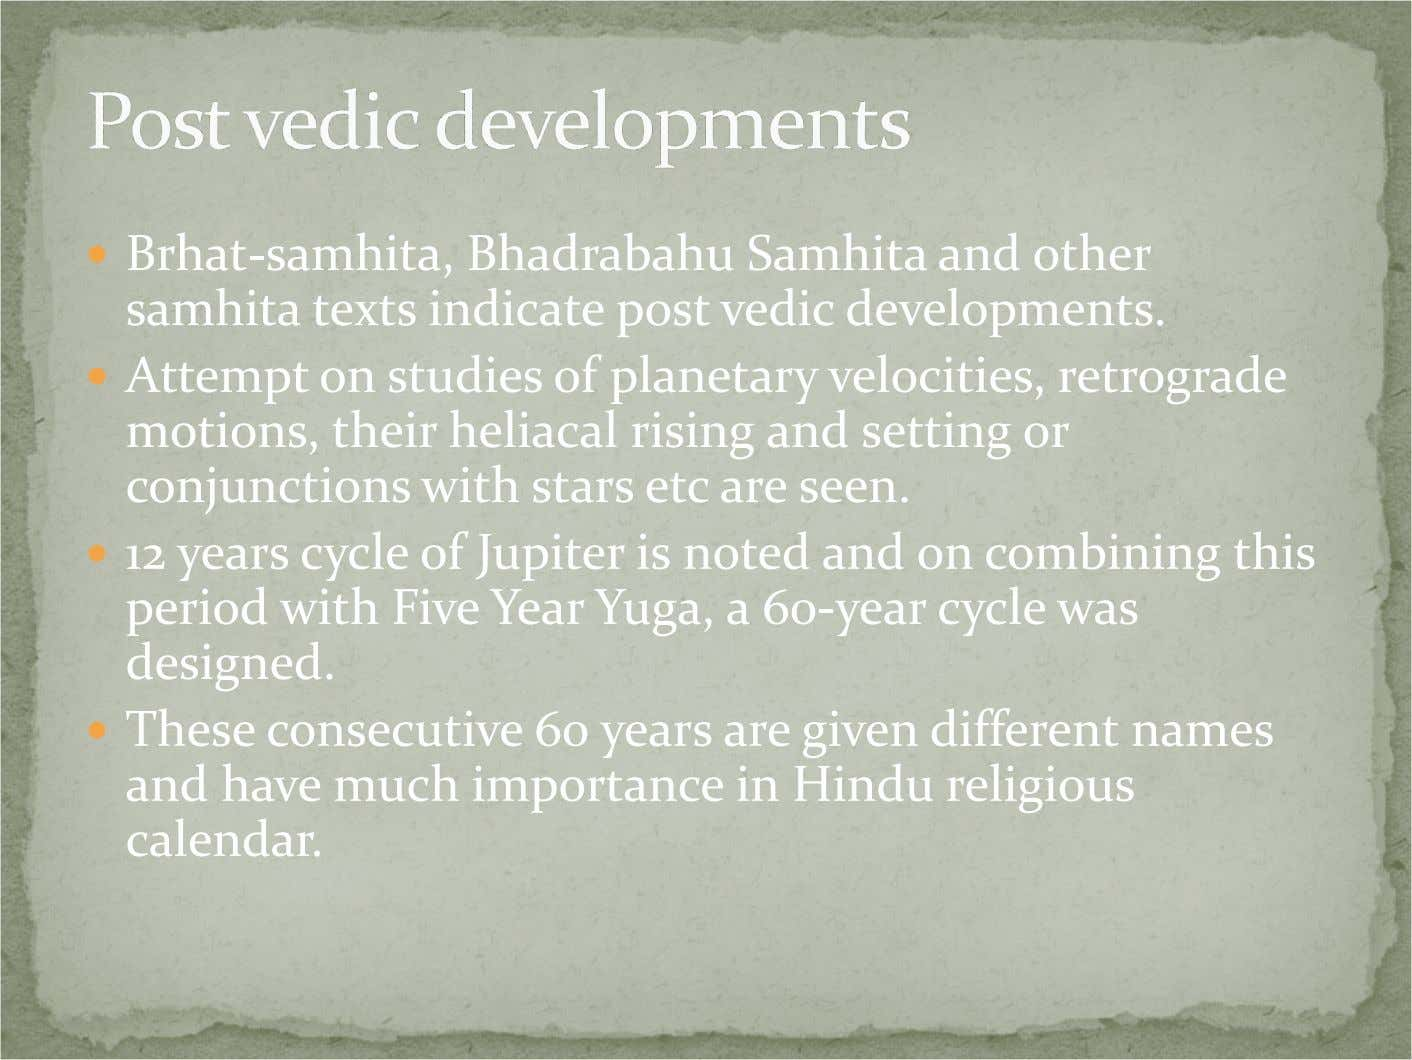 Brhat-samhita, Bhadrabahu Samhita and other samhita texts indicate post vedic developments. Attempt on studies of